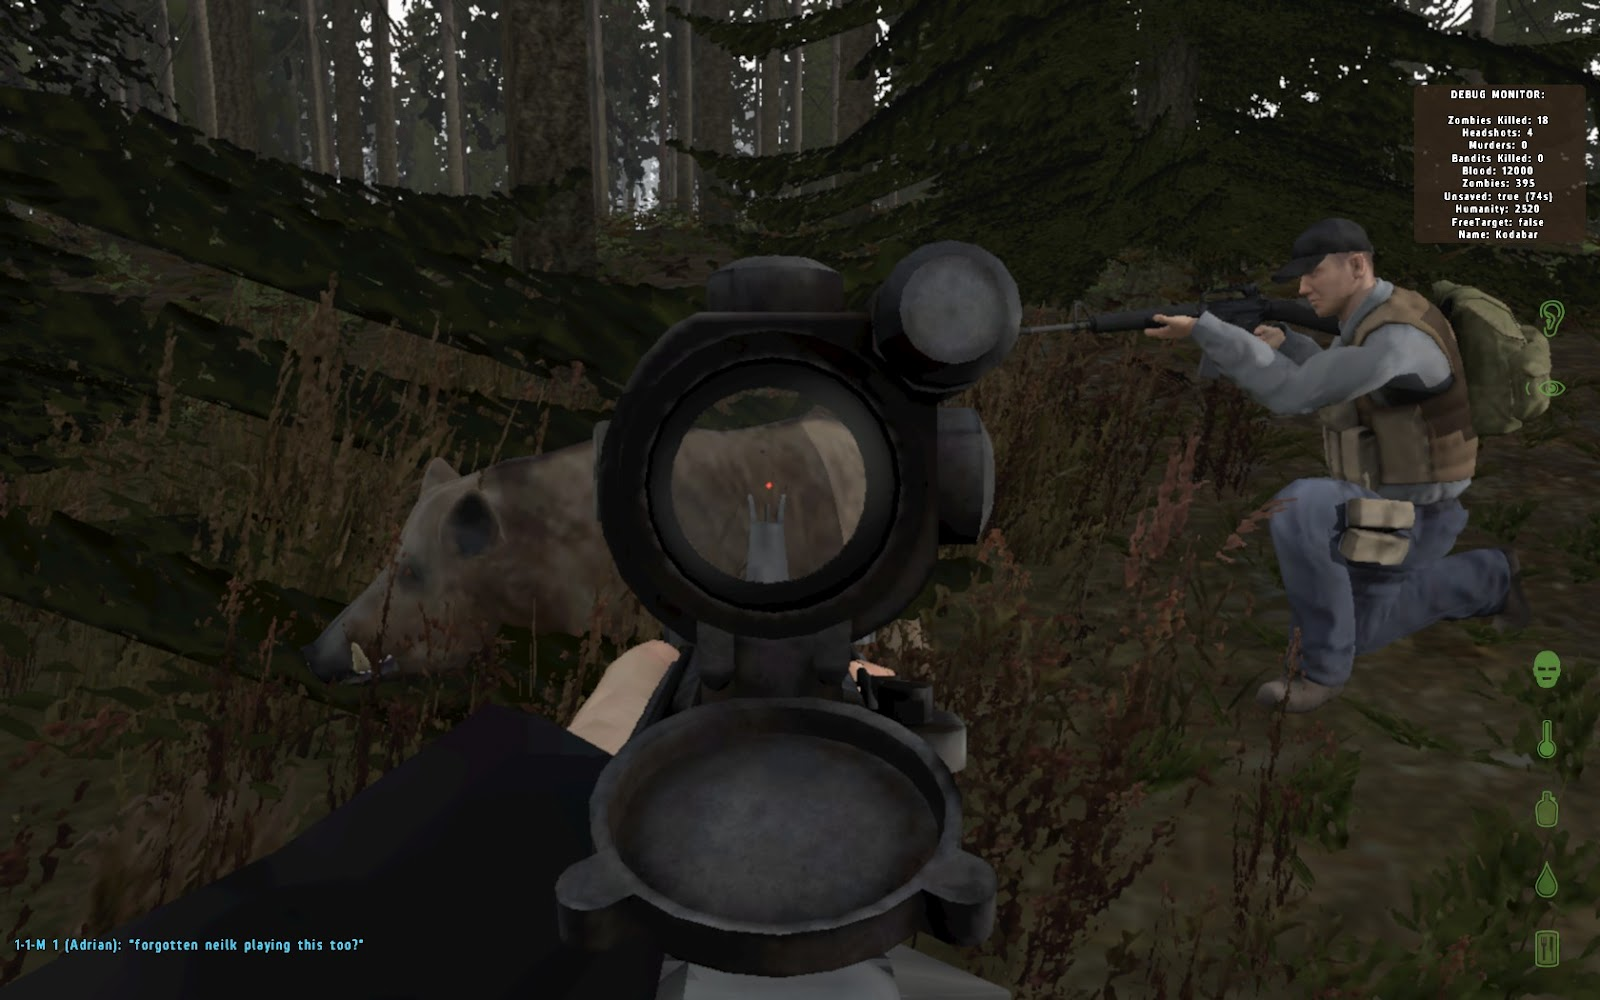 Kodabar DayZ blog: DayZ - how to stay alive for more than